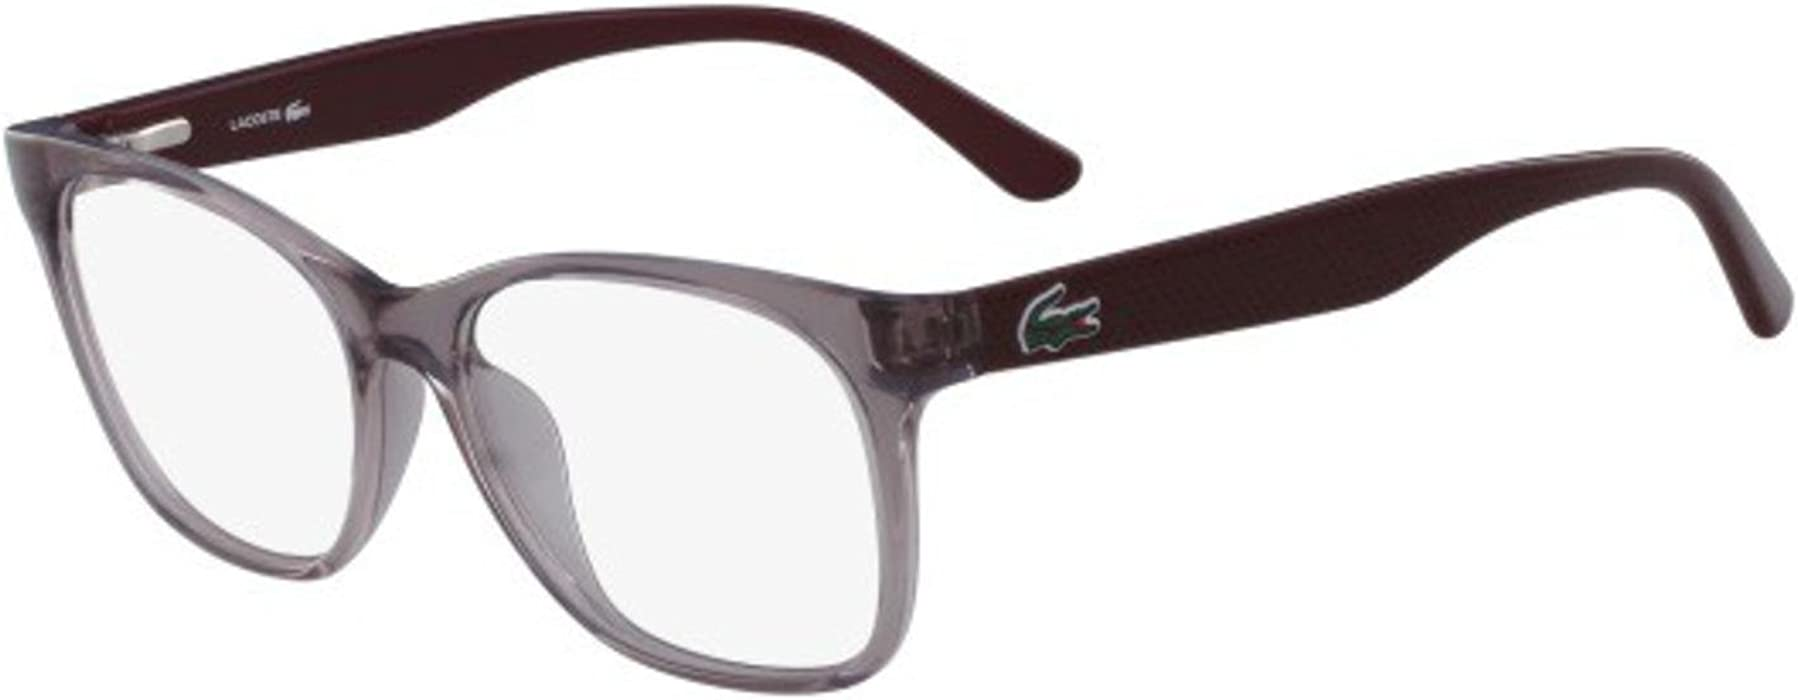 5ab6b2829fd Eyeglasses LACOSTE L2767 662 ROSE NUDE at Amazon Men s Clothing store